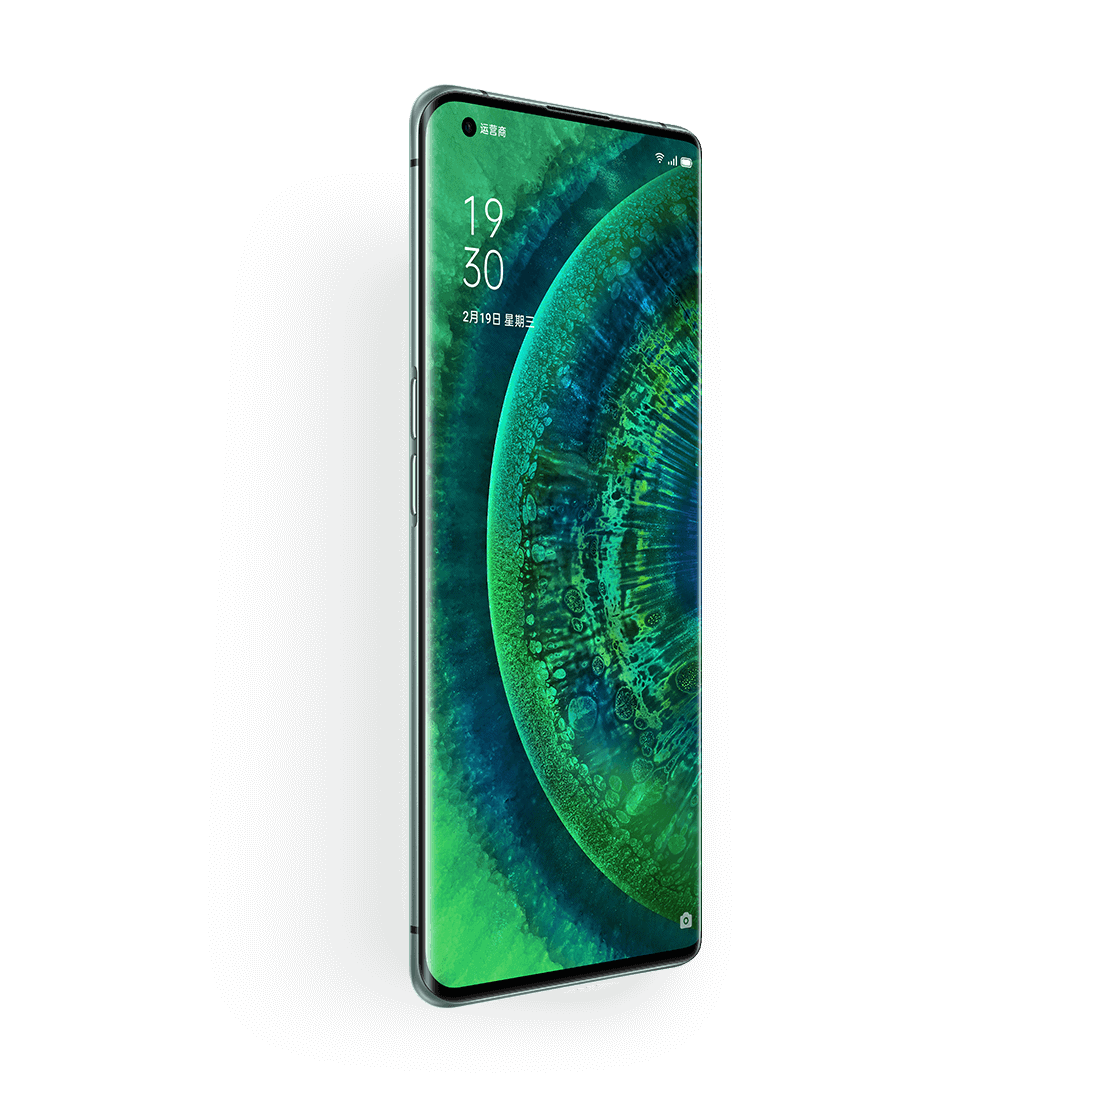 OPPO Find X2 Pro Green Vegan Leather image 3